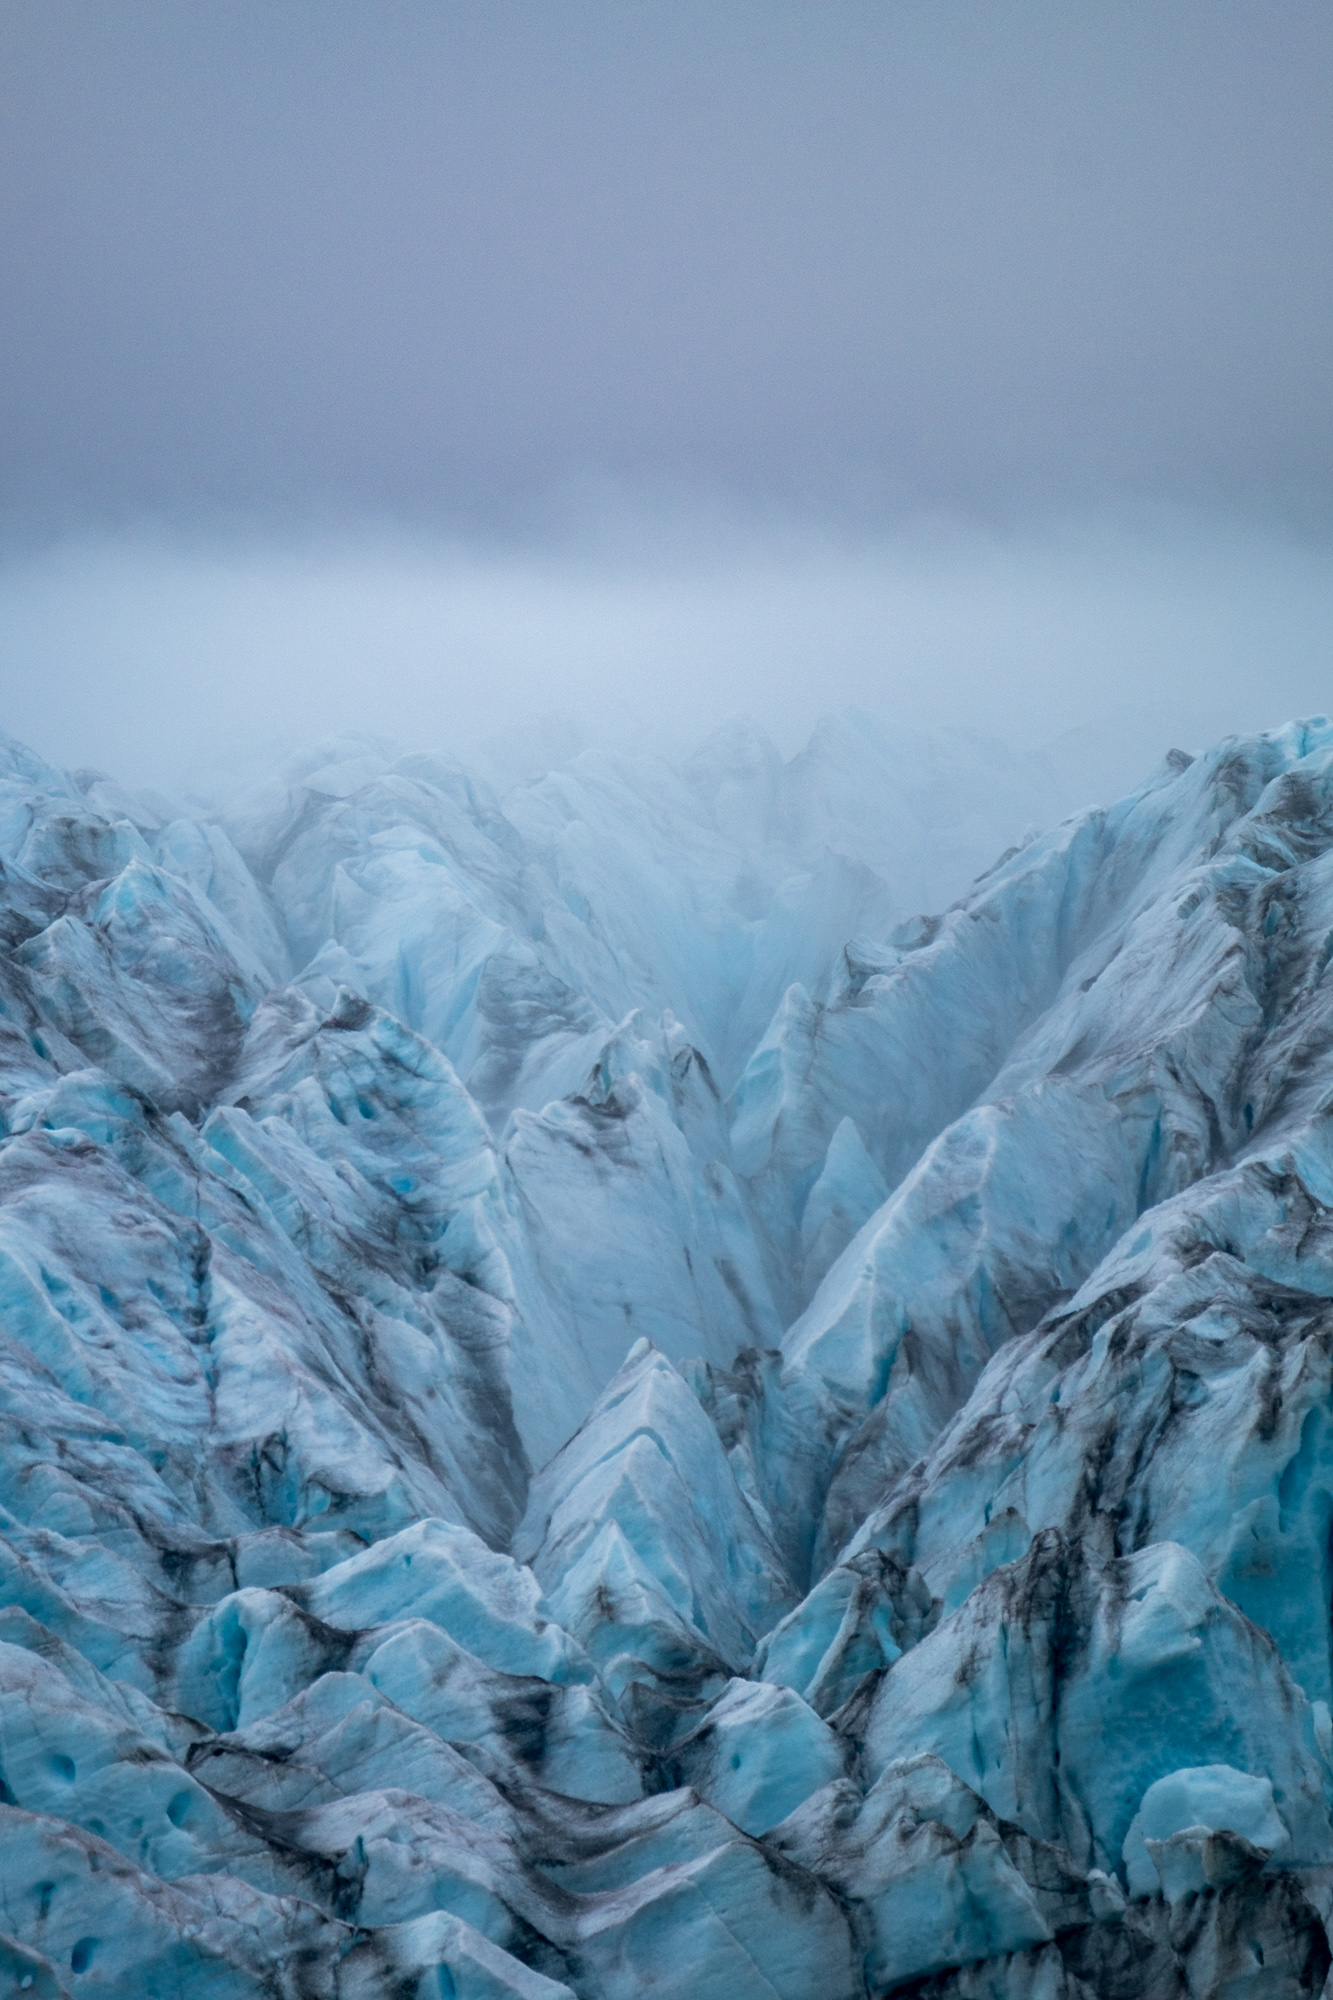 Wind picked up on the glacier, and brought the fog in.